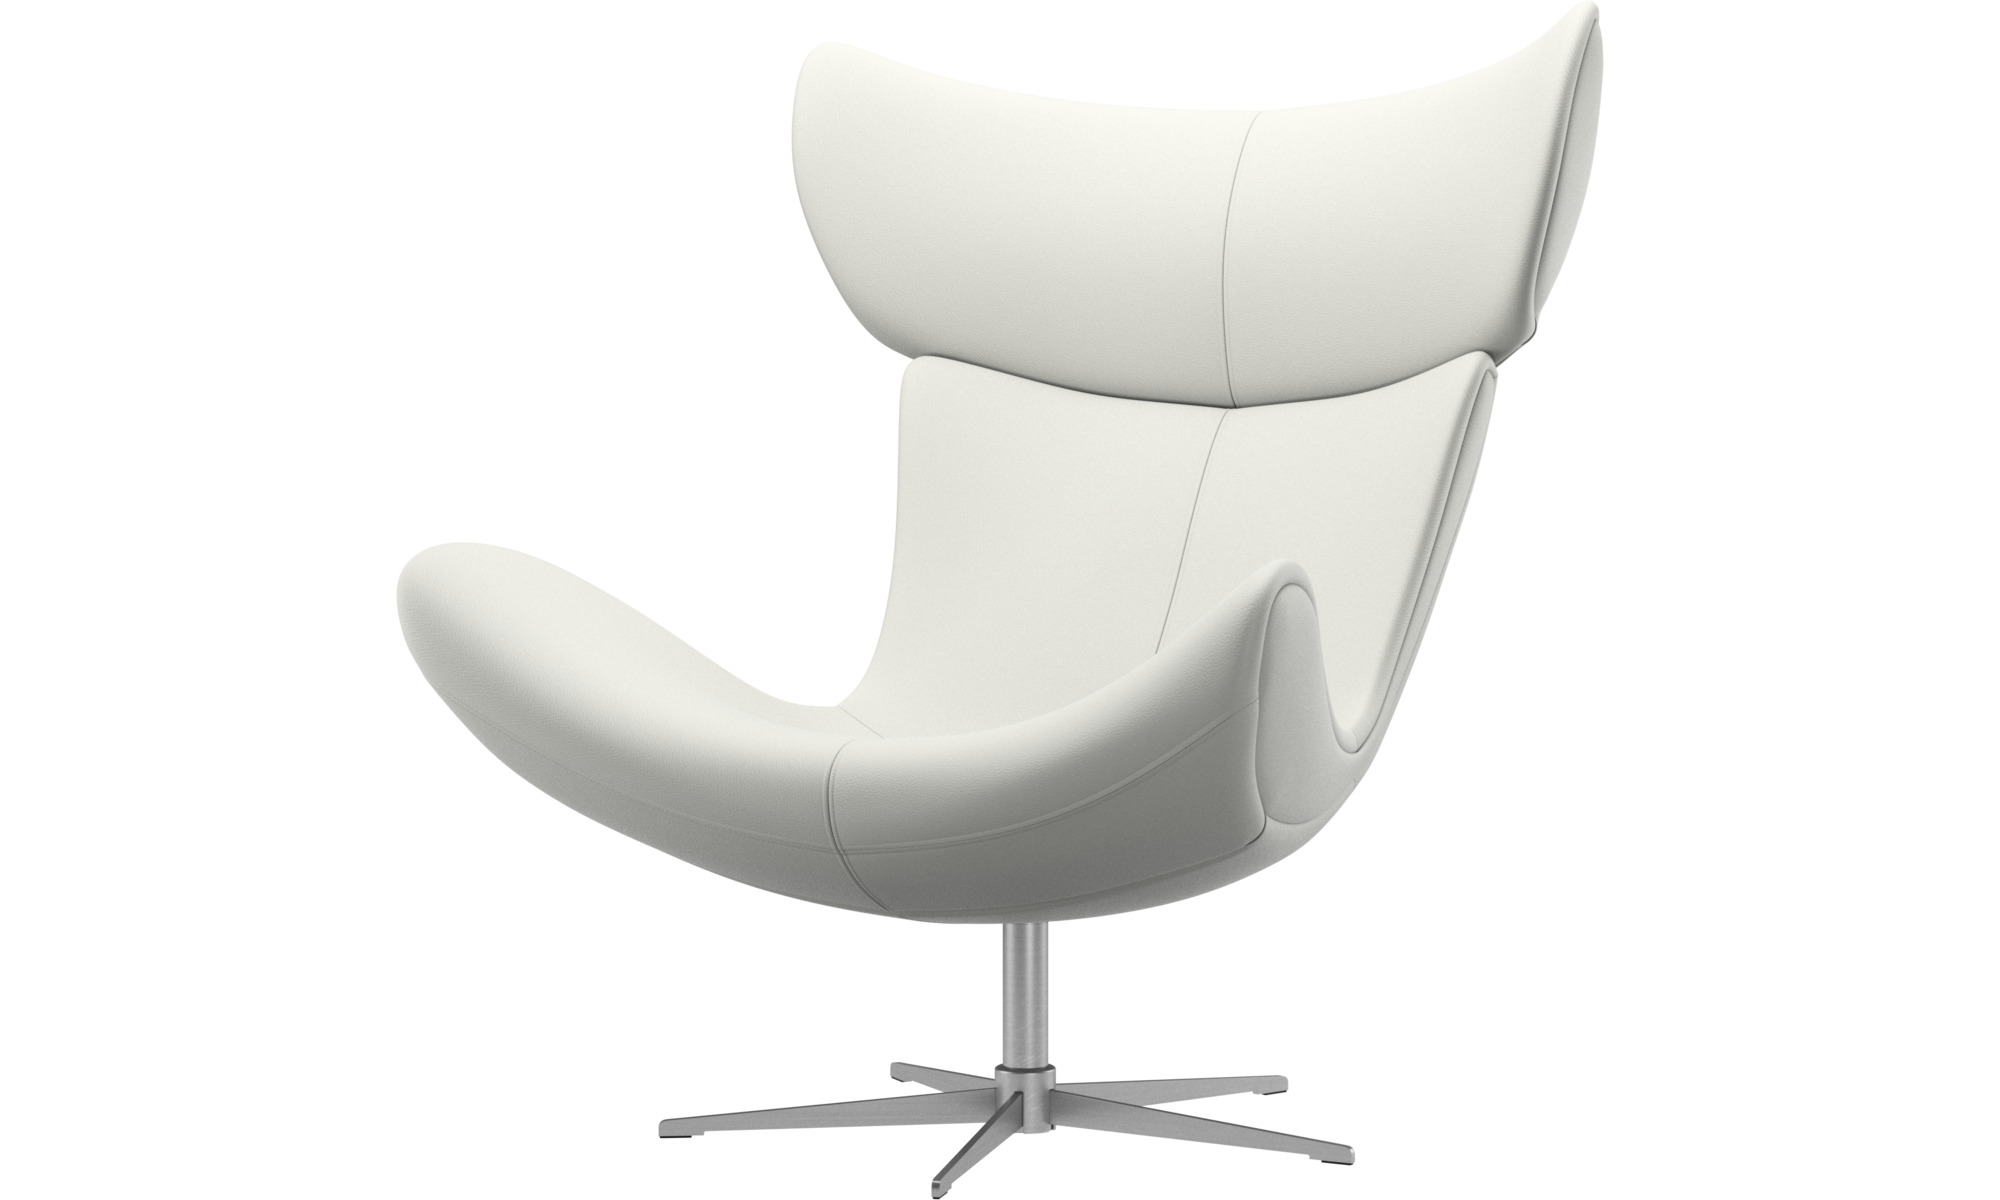 Armchairs - Imola chair with swivel function - White - Leather